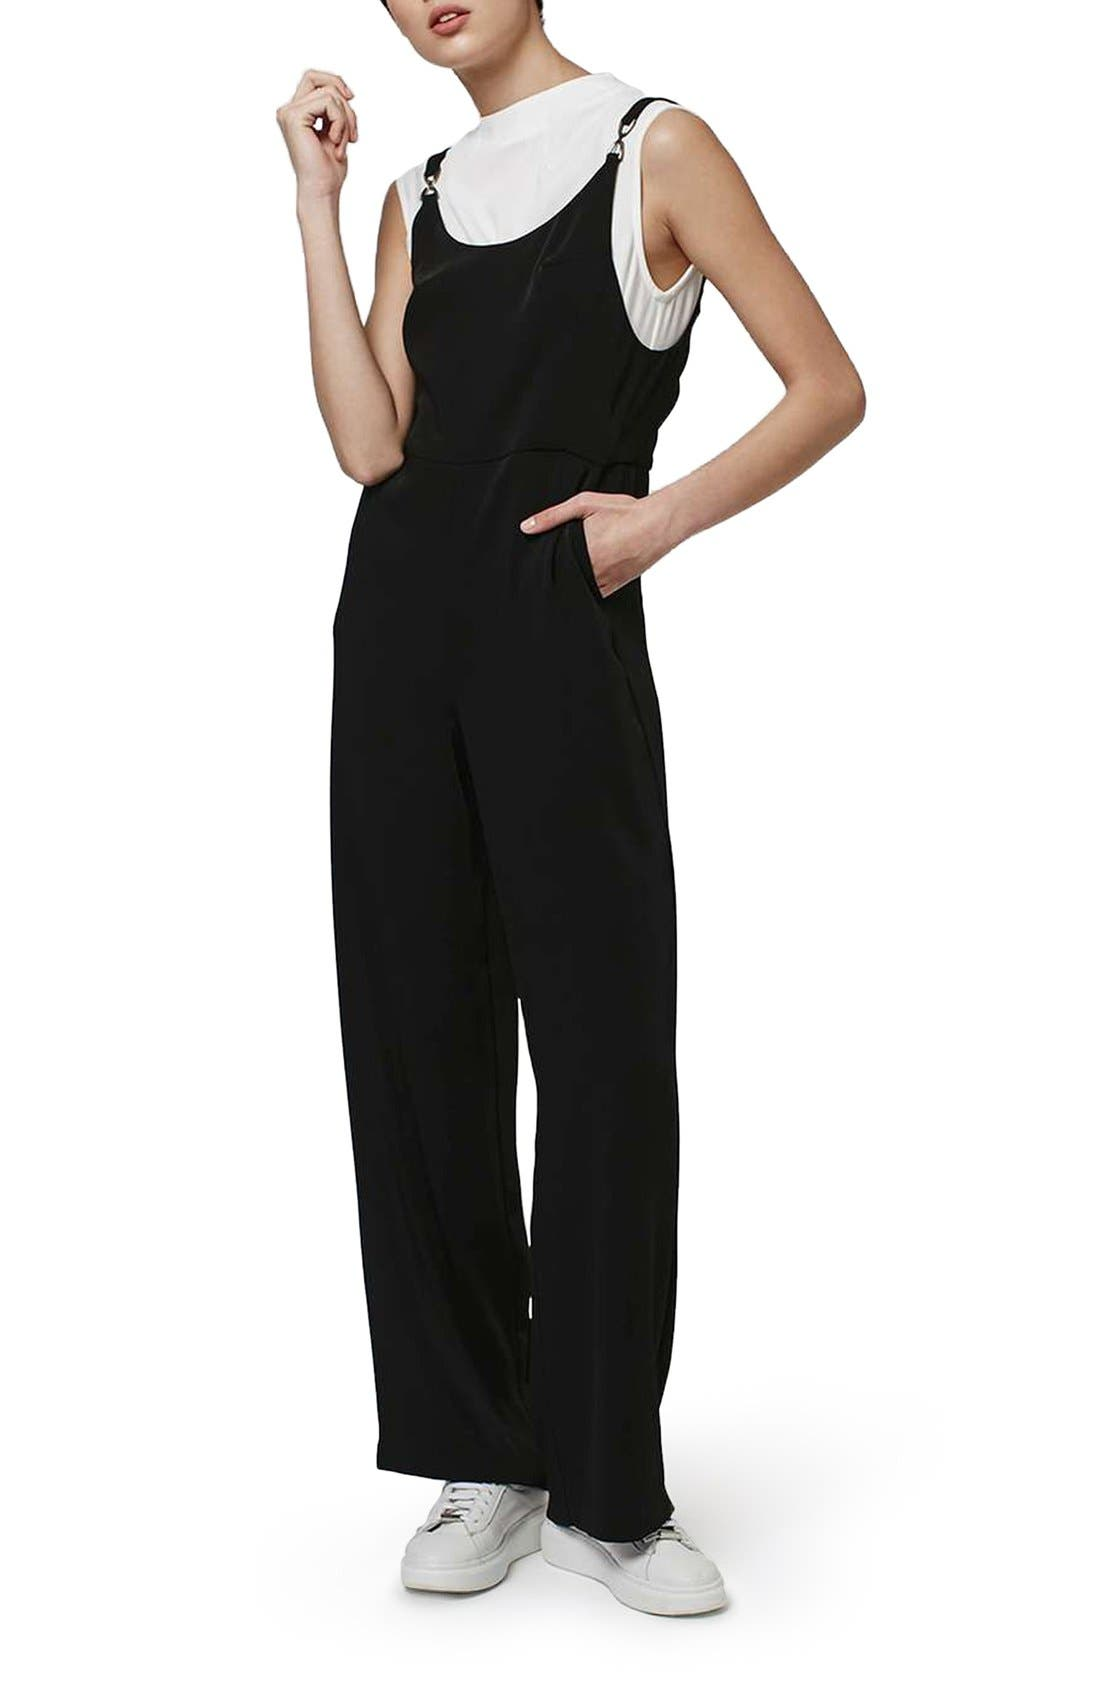 Topshop Layer Look 2-in-1 Jumpsuit